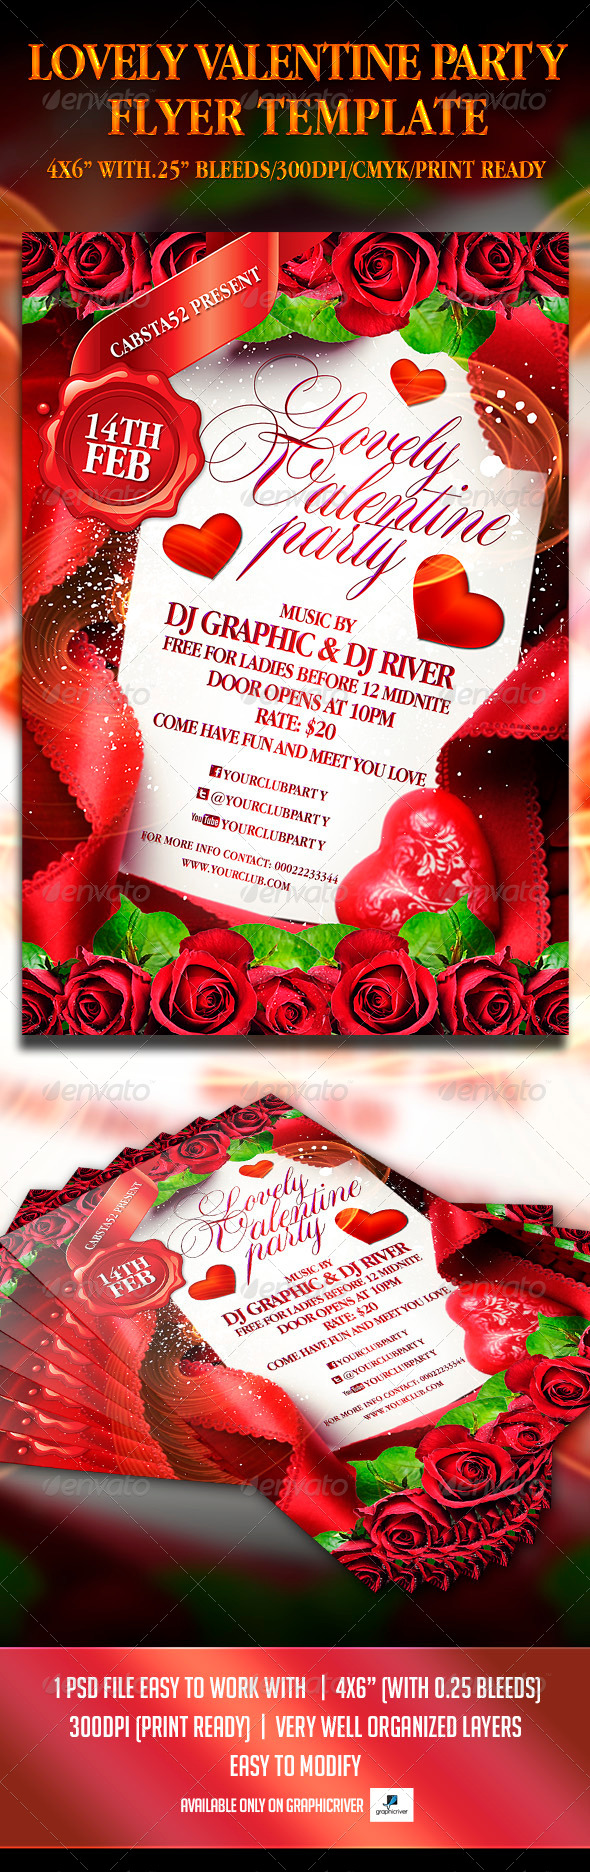 Lovely Valentine Party Flyer Template